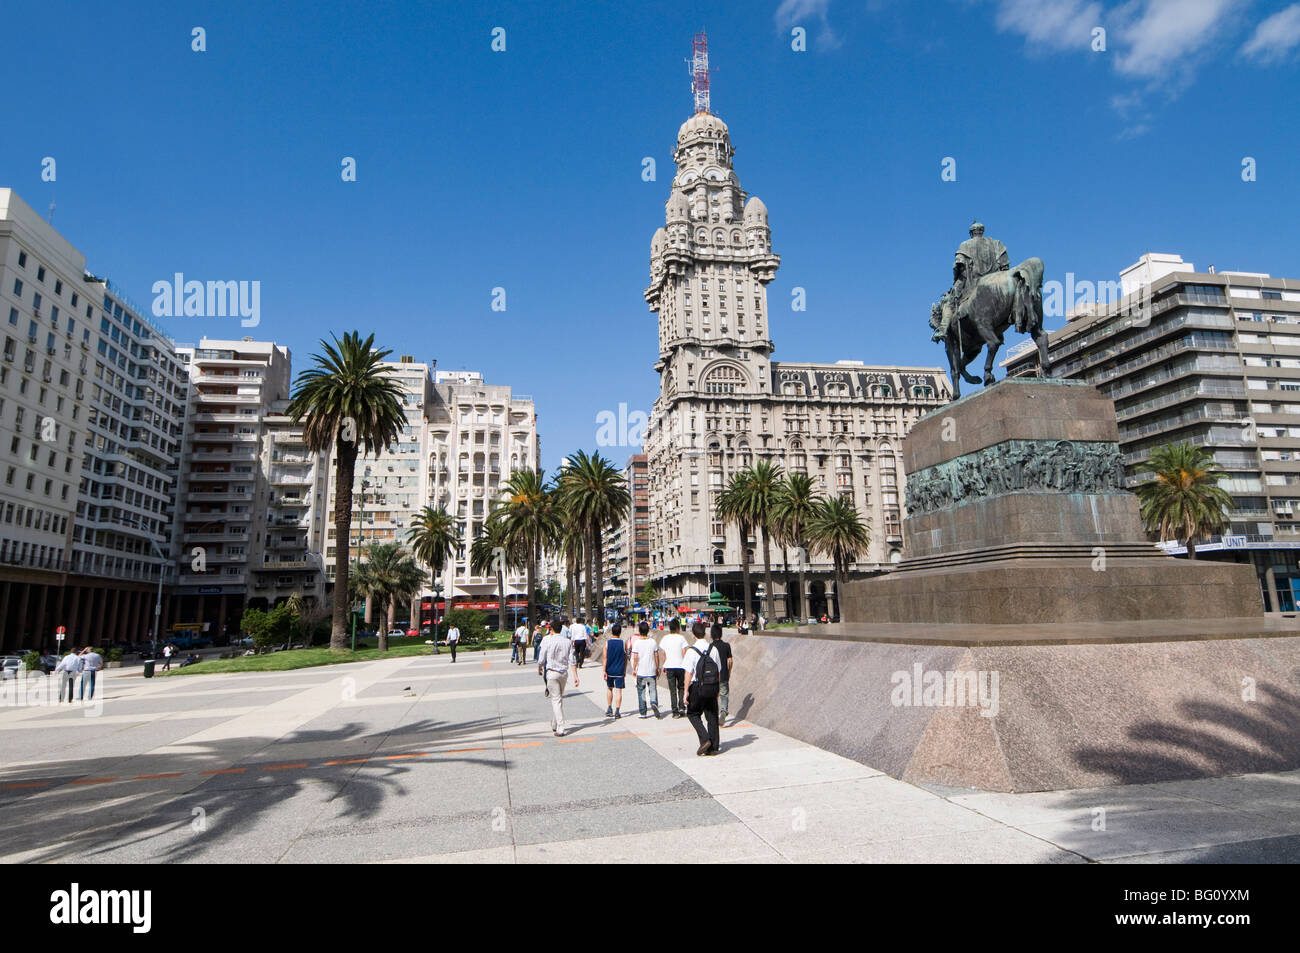 Palacio Salvo, on east side of Plaza Independencia (Independence Square), Montevideo, Uruguay, South America - Stock Image